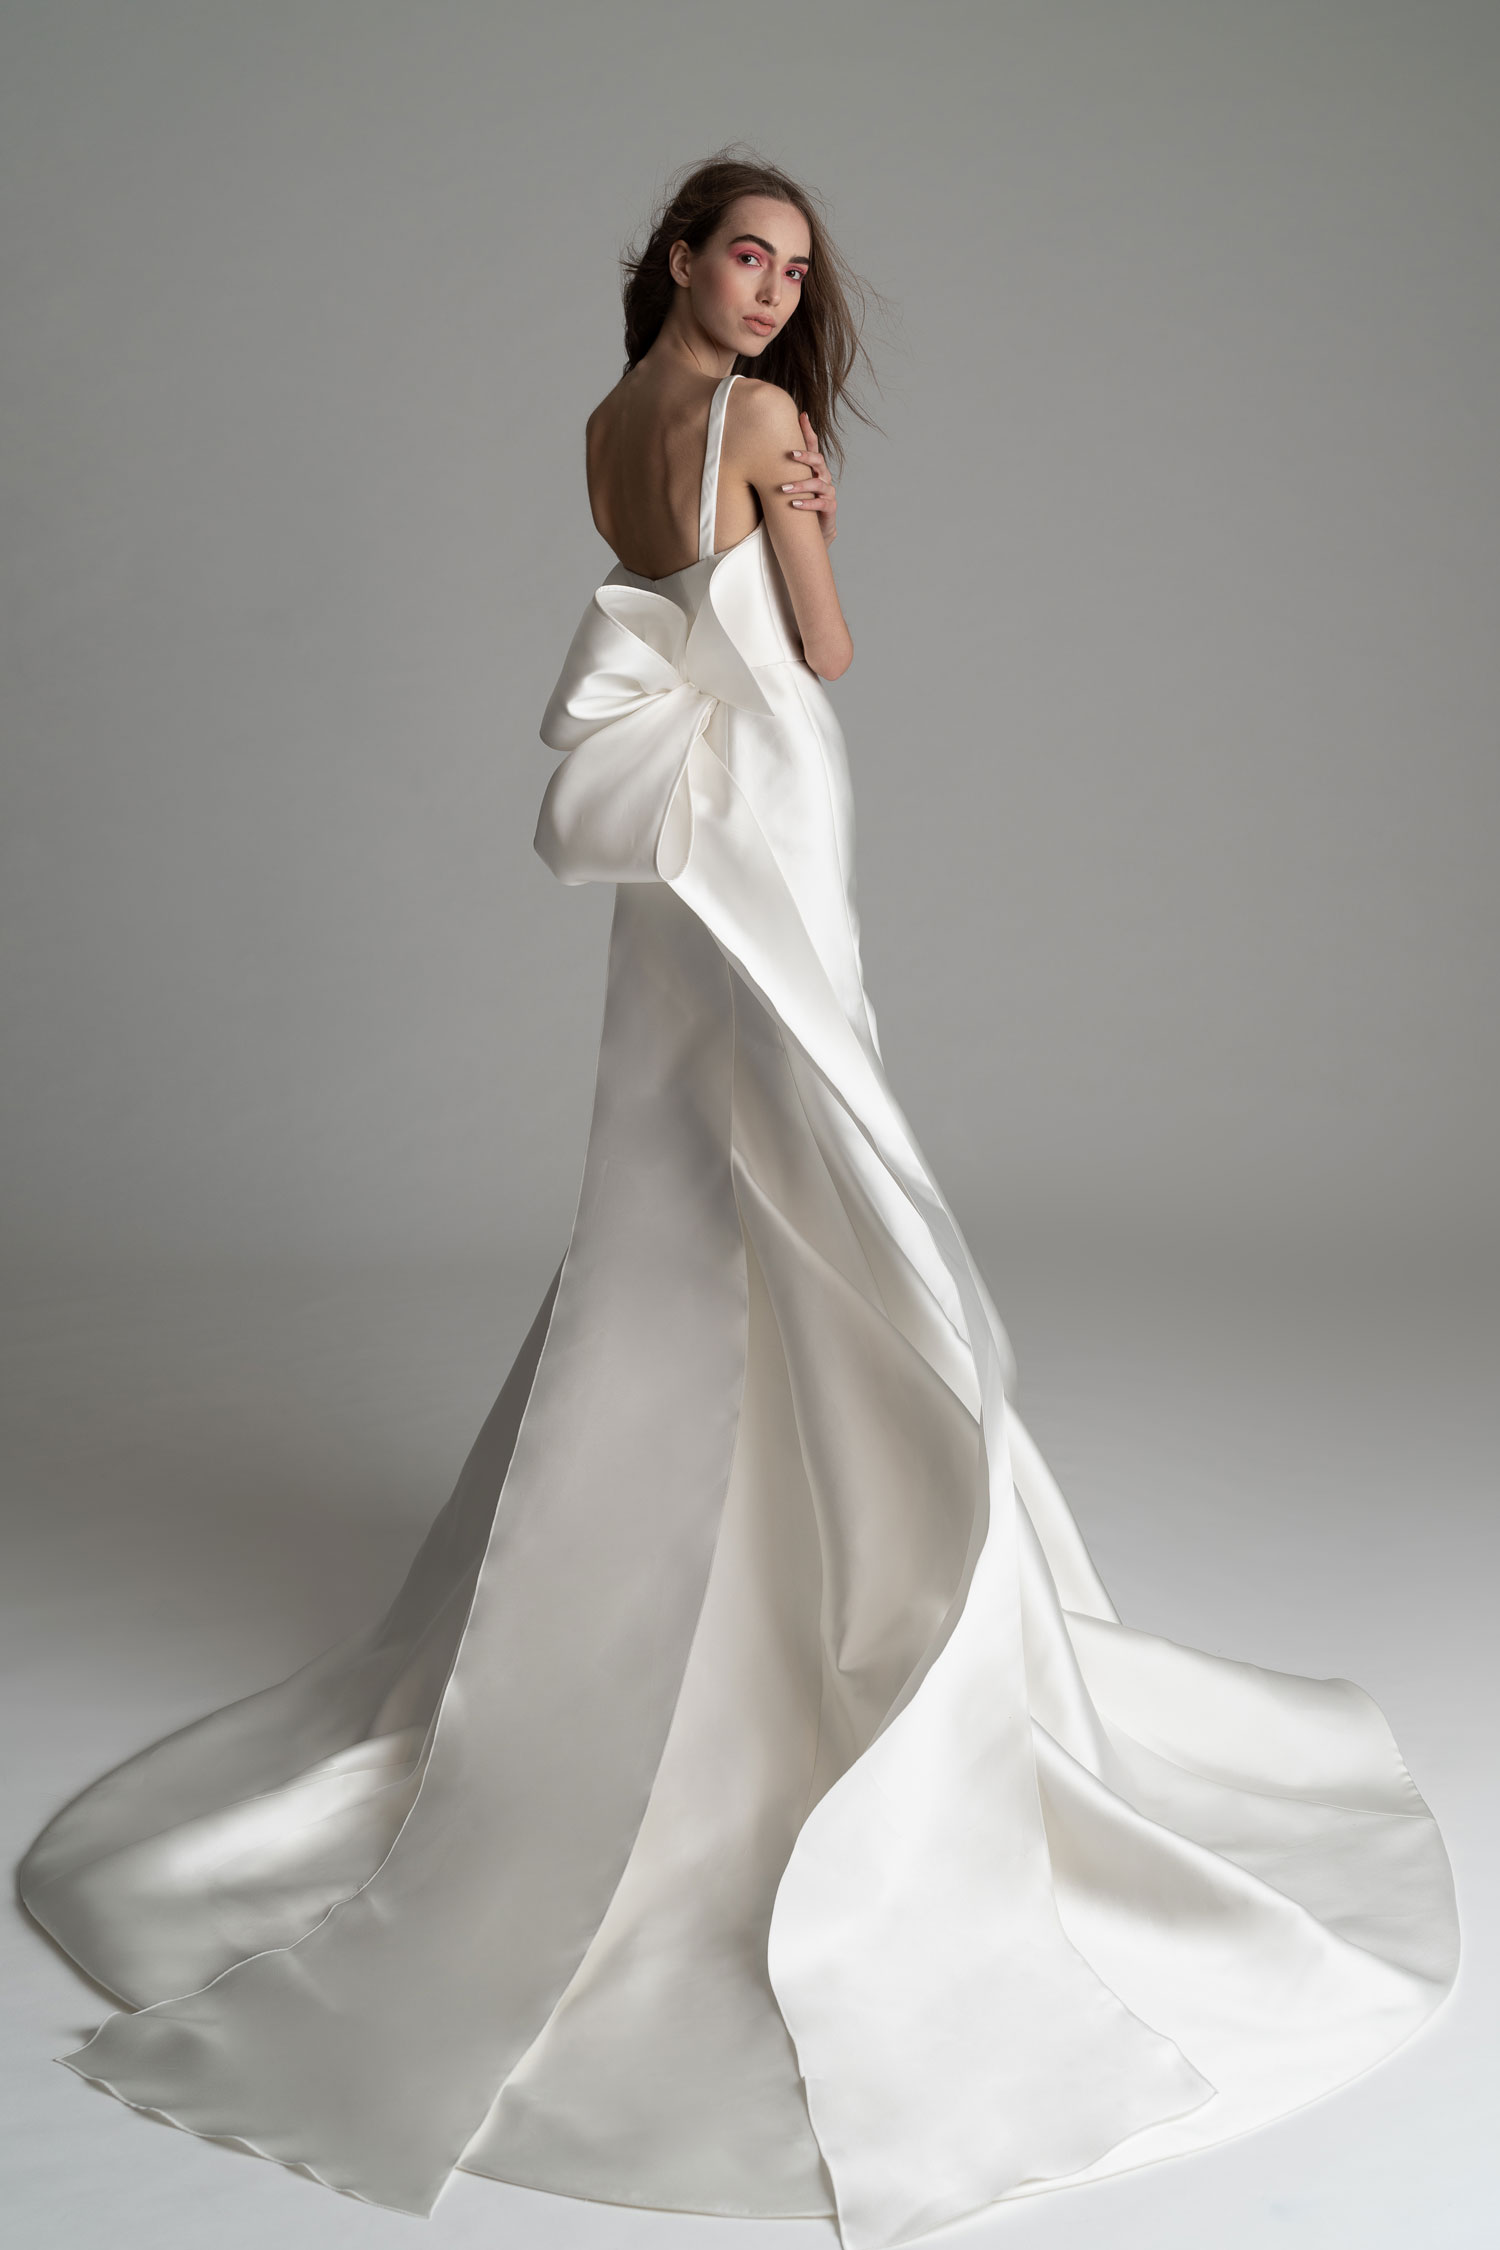 Rowling wedding dress by Rivini with large oversize bow in back